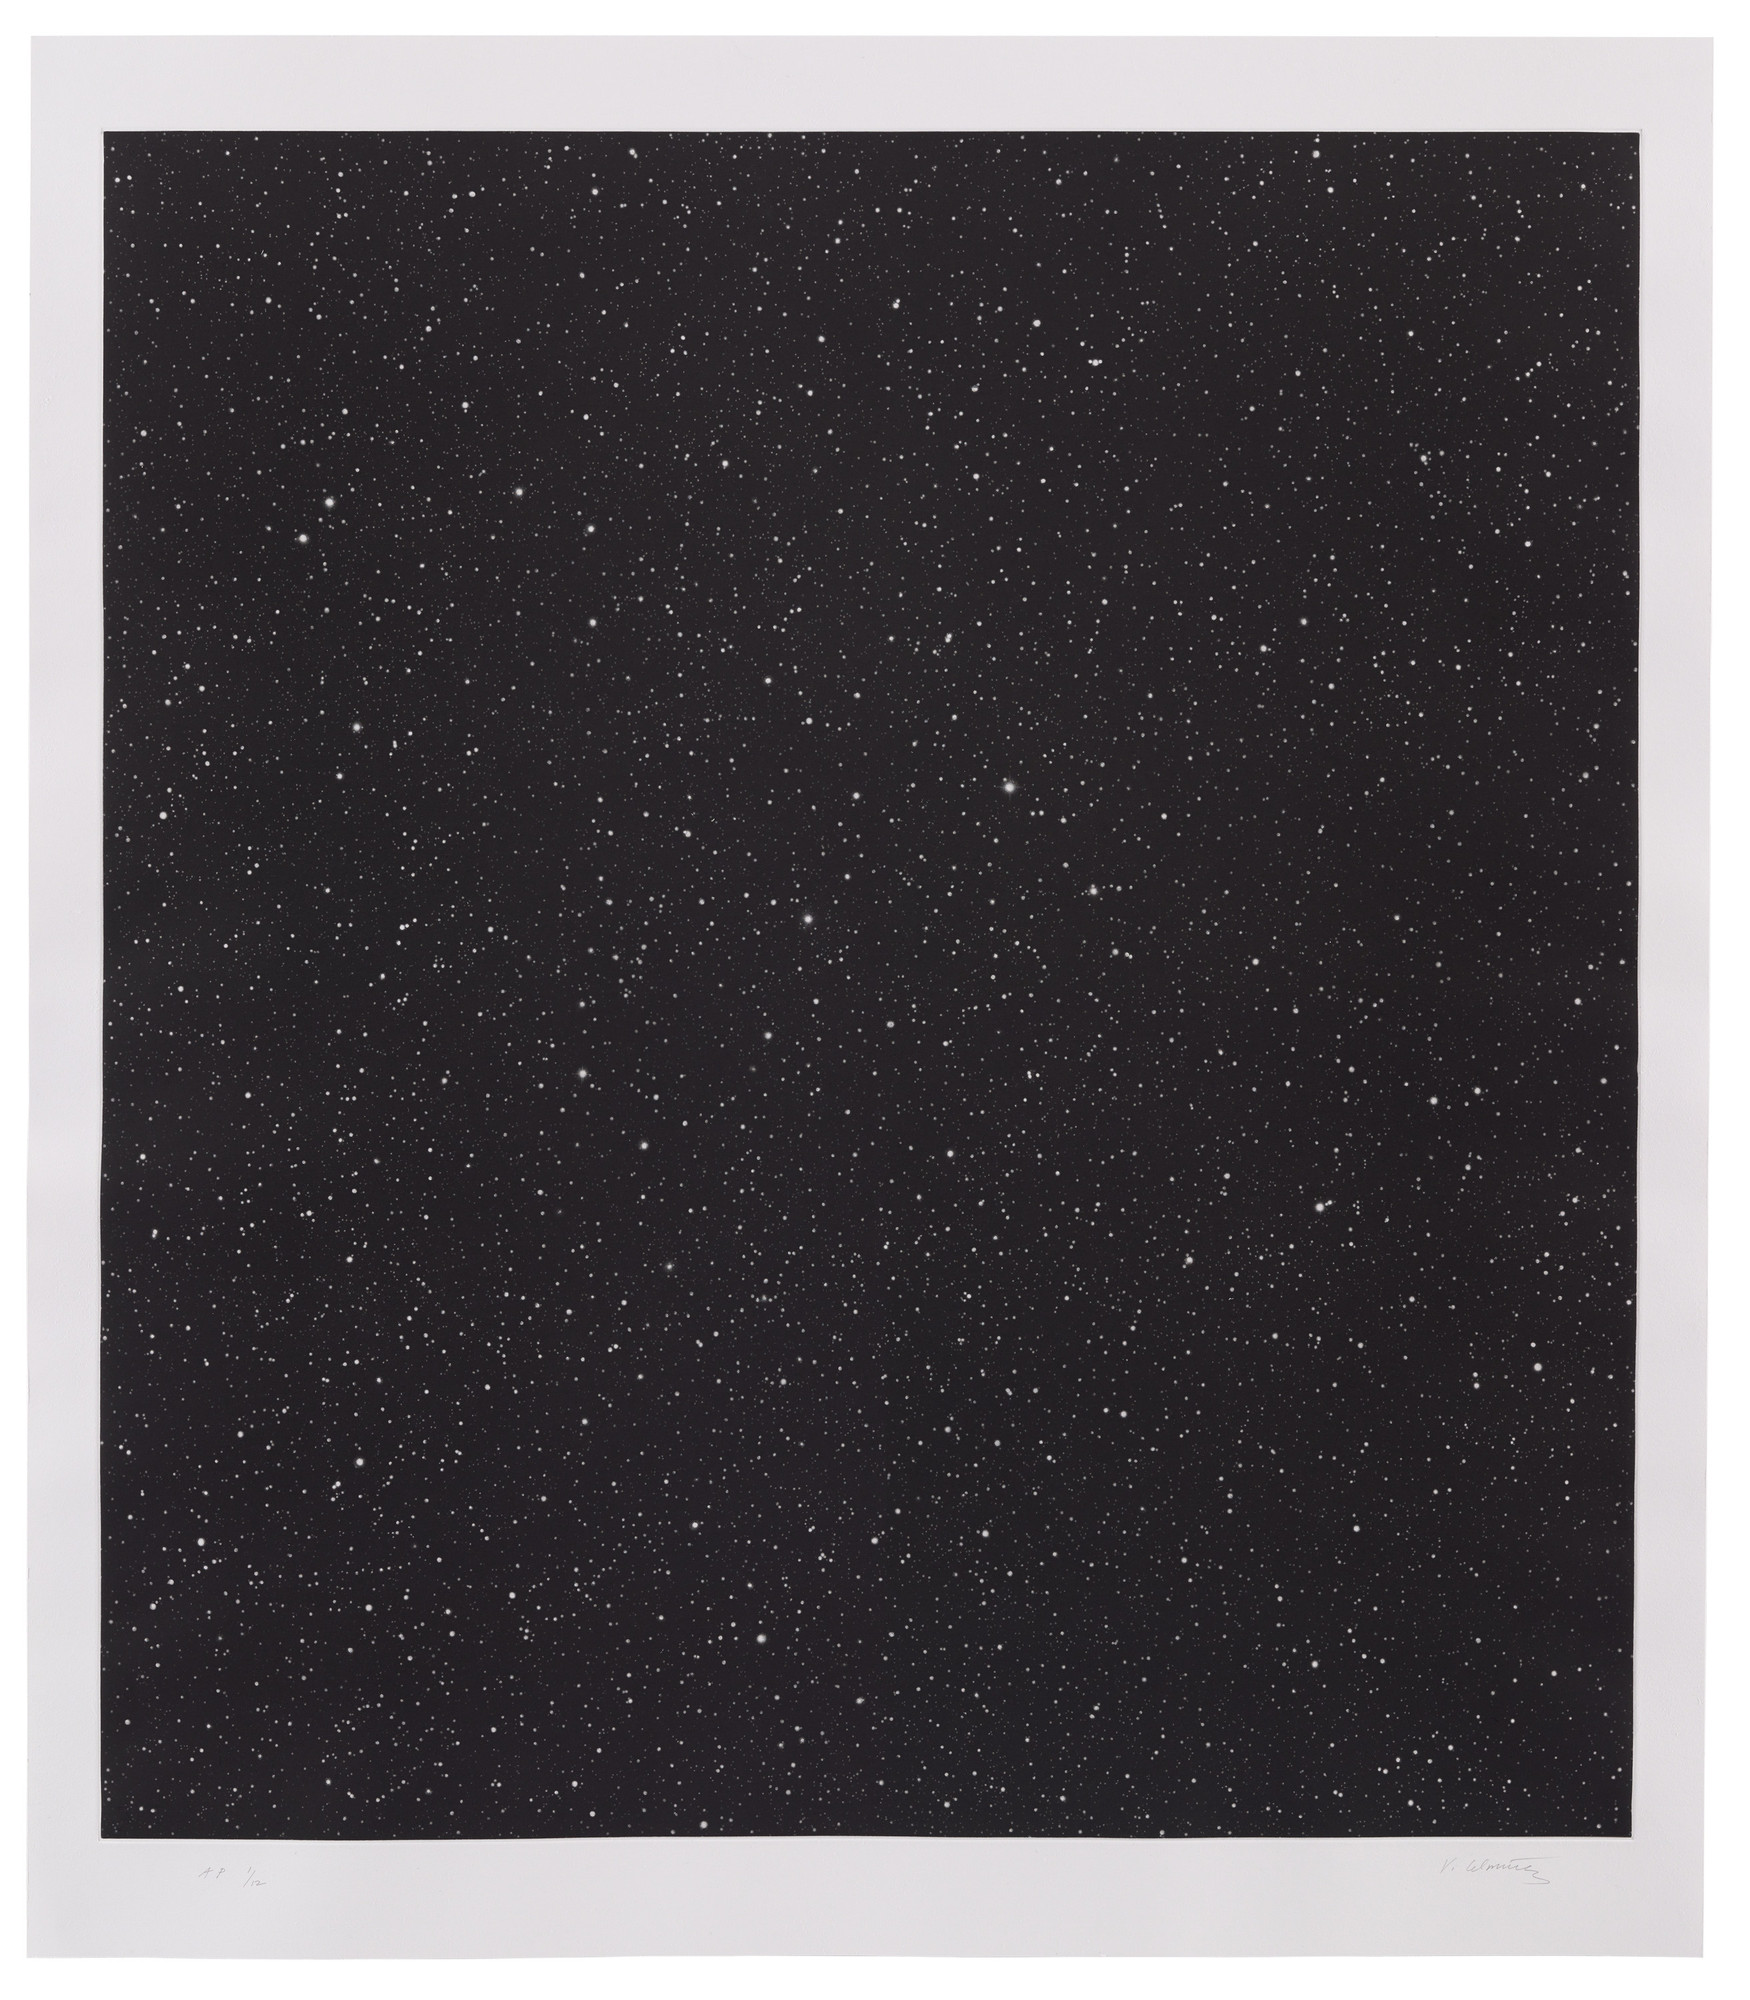 "Vija Celmins. Untitled (Large Night Sky). 2016. Mezzotint, plate: 36 5/8 × 33 1/16"" (93 × 84 cm); sheet: 41 5/16 × 35 13/16"" (105 × 91 cm). Simmelink/Sukimoto Editions, Ventura, California. Gift of Jack Shear. © Vija Celmins, Courtesy Matthew Marks Gallery"